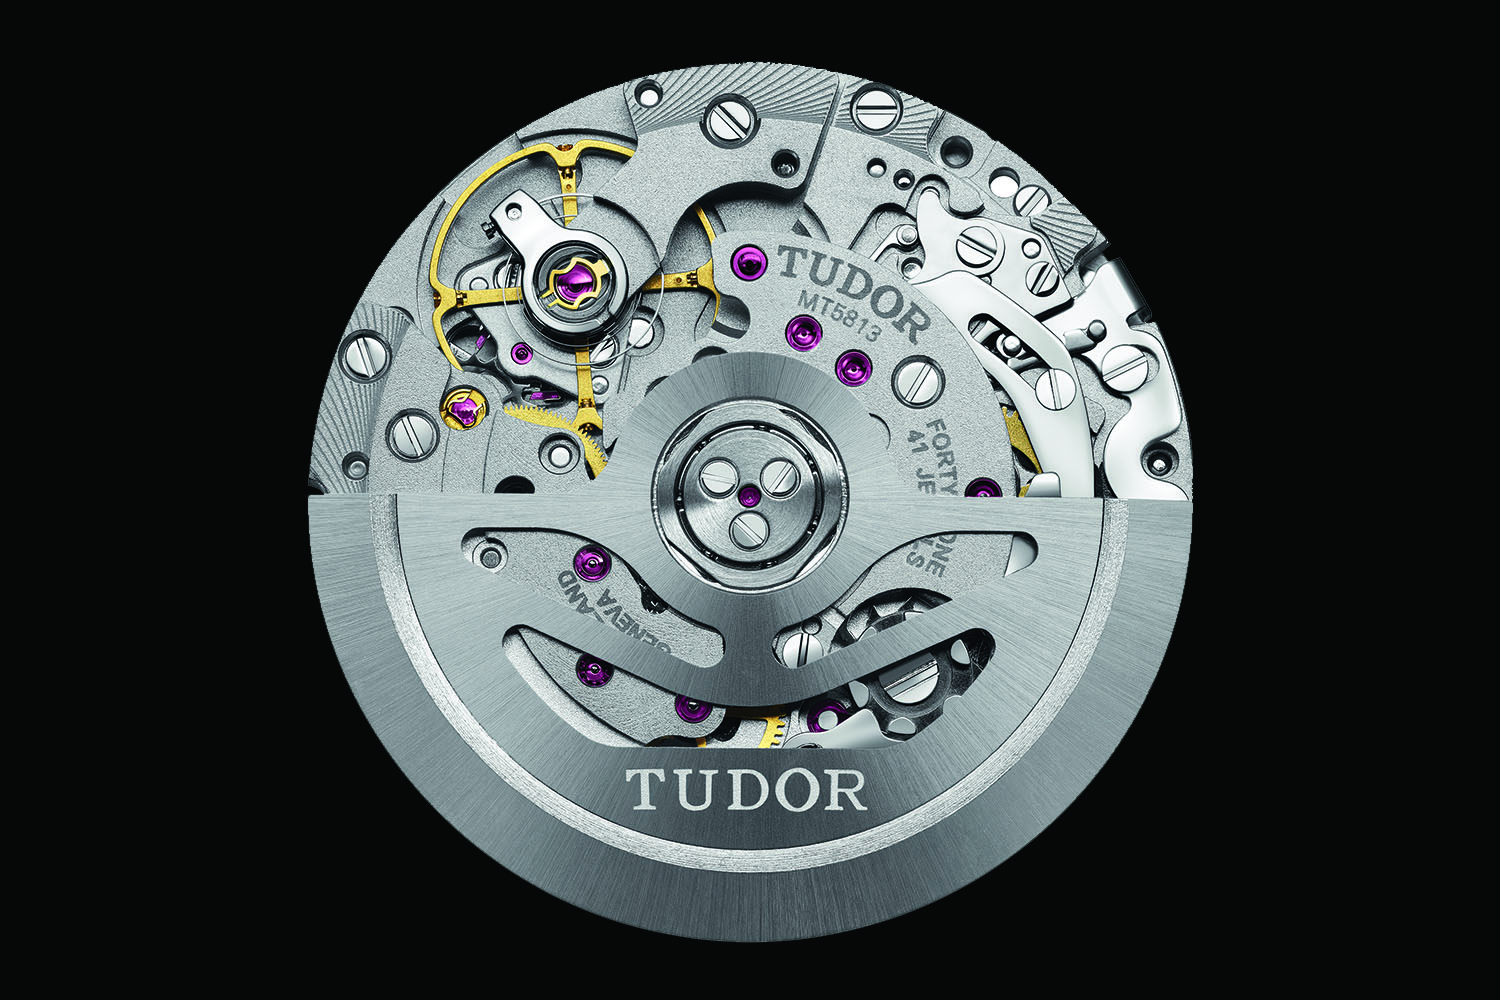 Tudor MT5813 manufacture movement chronograph